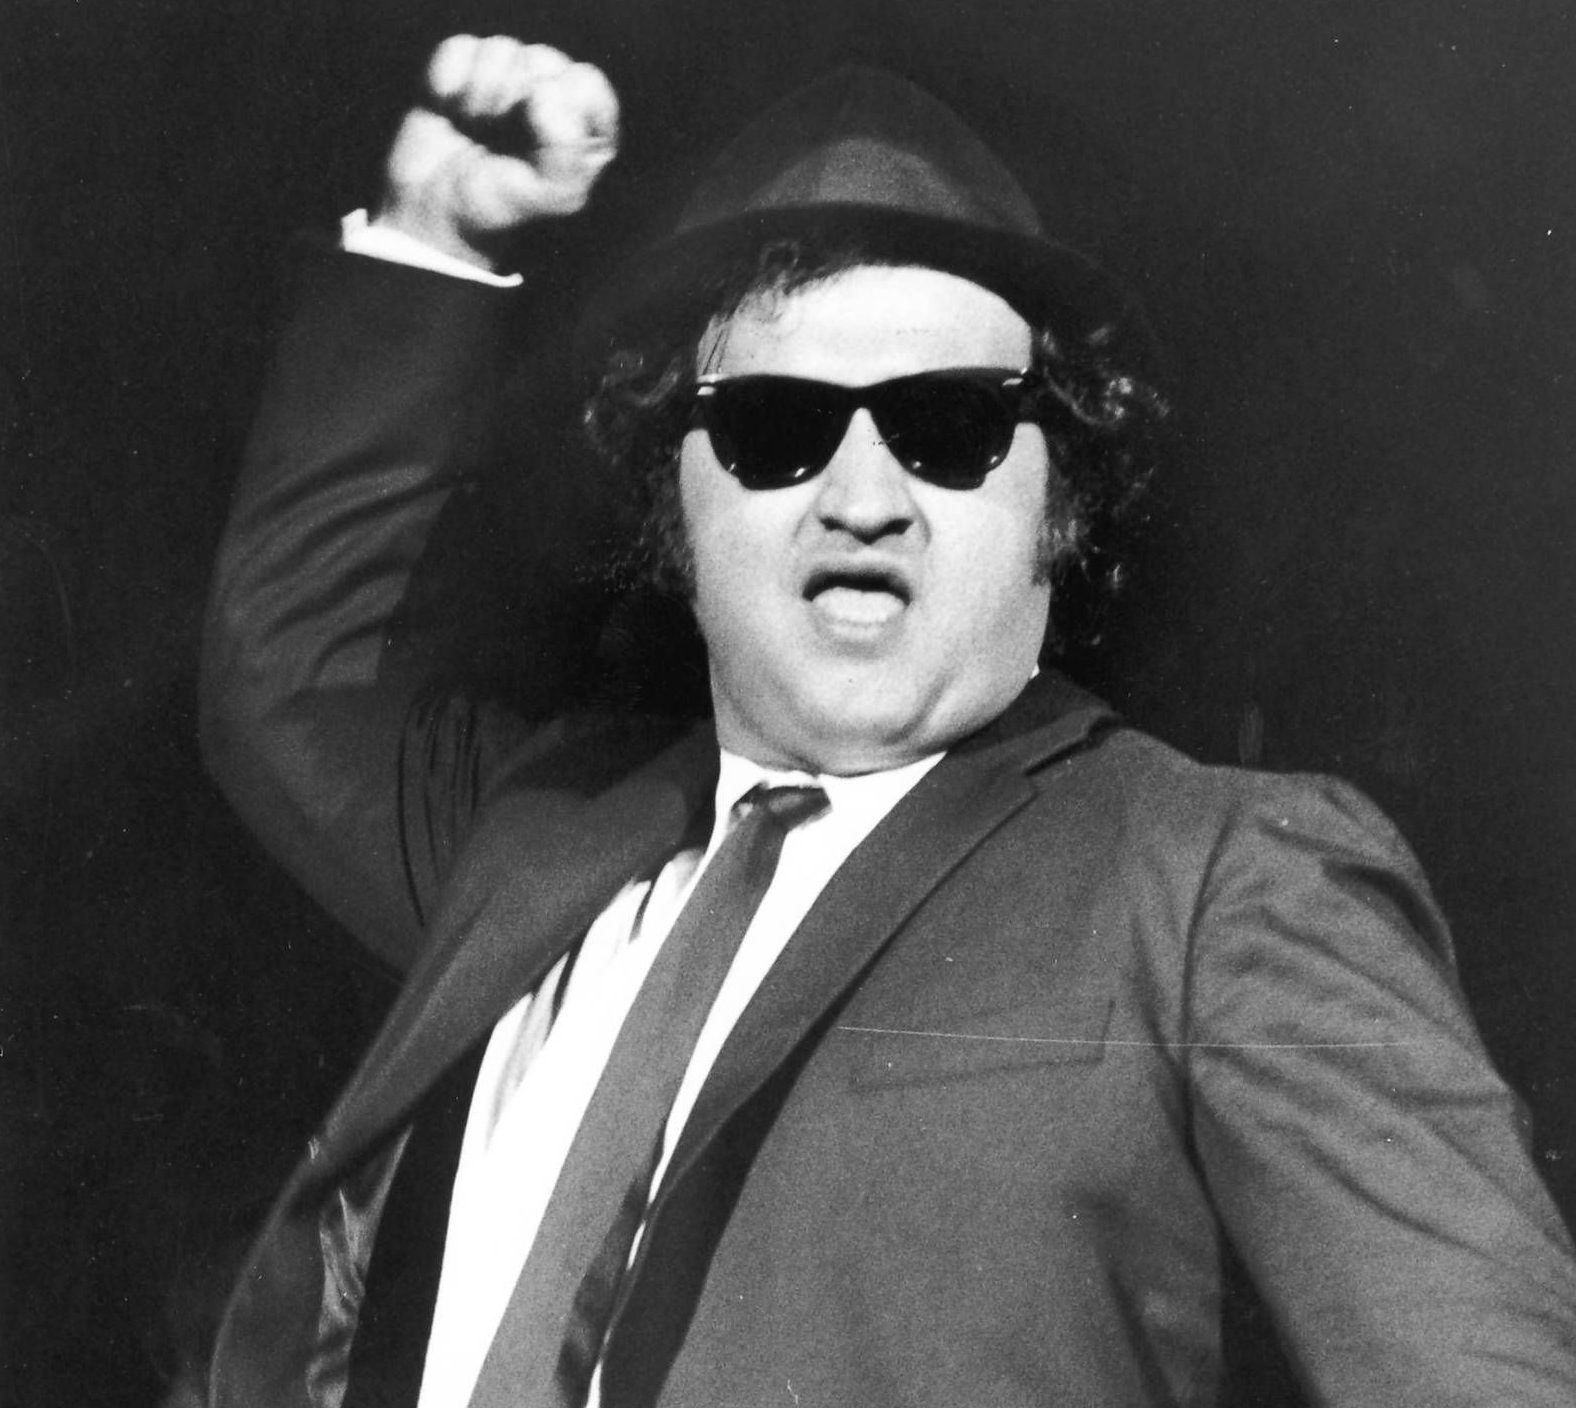 567aaad58ea1a86762f6e92da0c5e140 e1622015901863 25 Things You Never Knew About The Blues Brothers